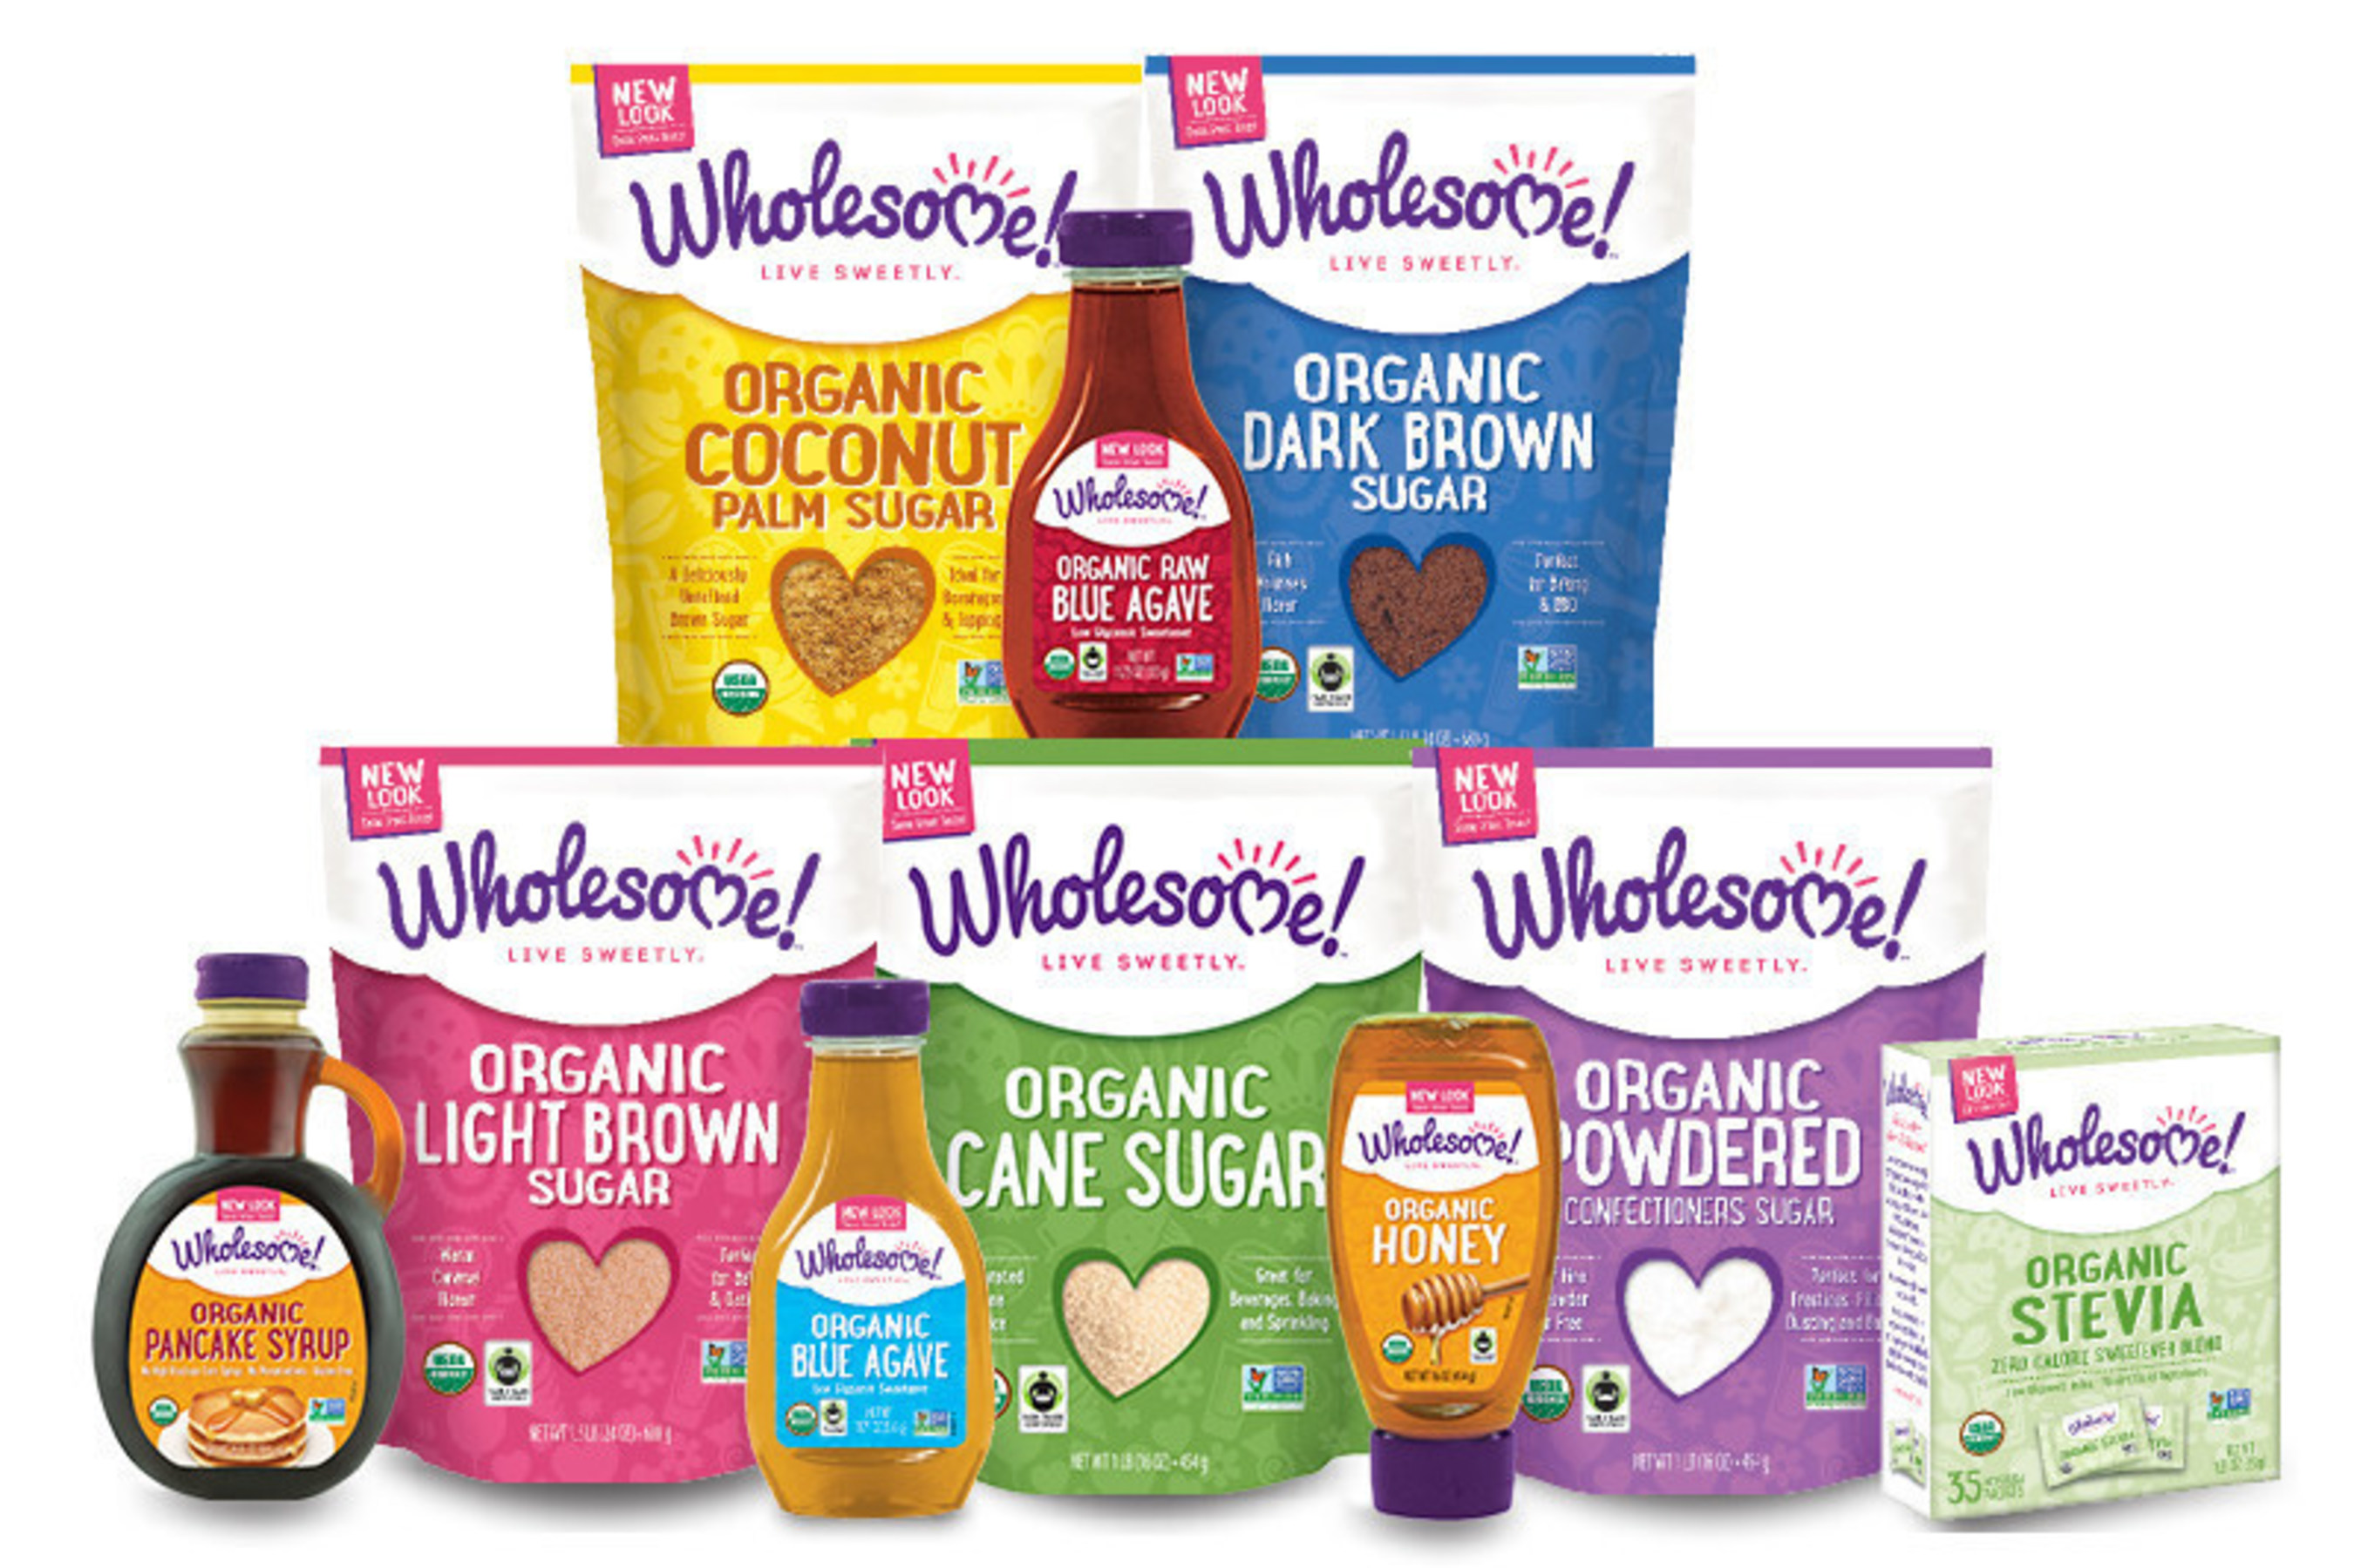 In honor of Earth Day, Wholesome!(TM) celebrates 14 years of sustainable, eco-friendly agriculture throughout its organic sweetener business. Today, the company has more than 50 products all sourced from sustainable farms around the world and stands as the leading U.S. brand of Organic, Fair Trade and Non-GMO sugars, syrups, stevia, honey and molasses.